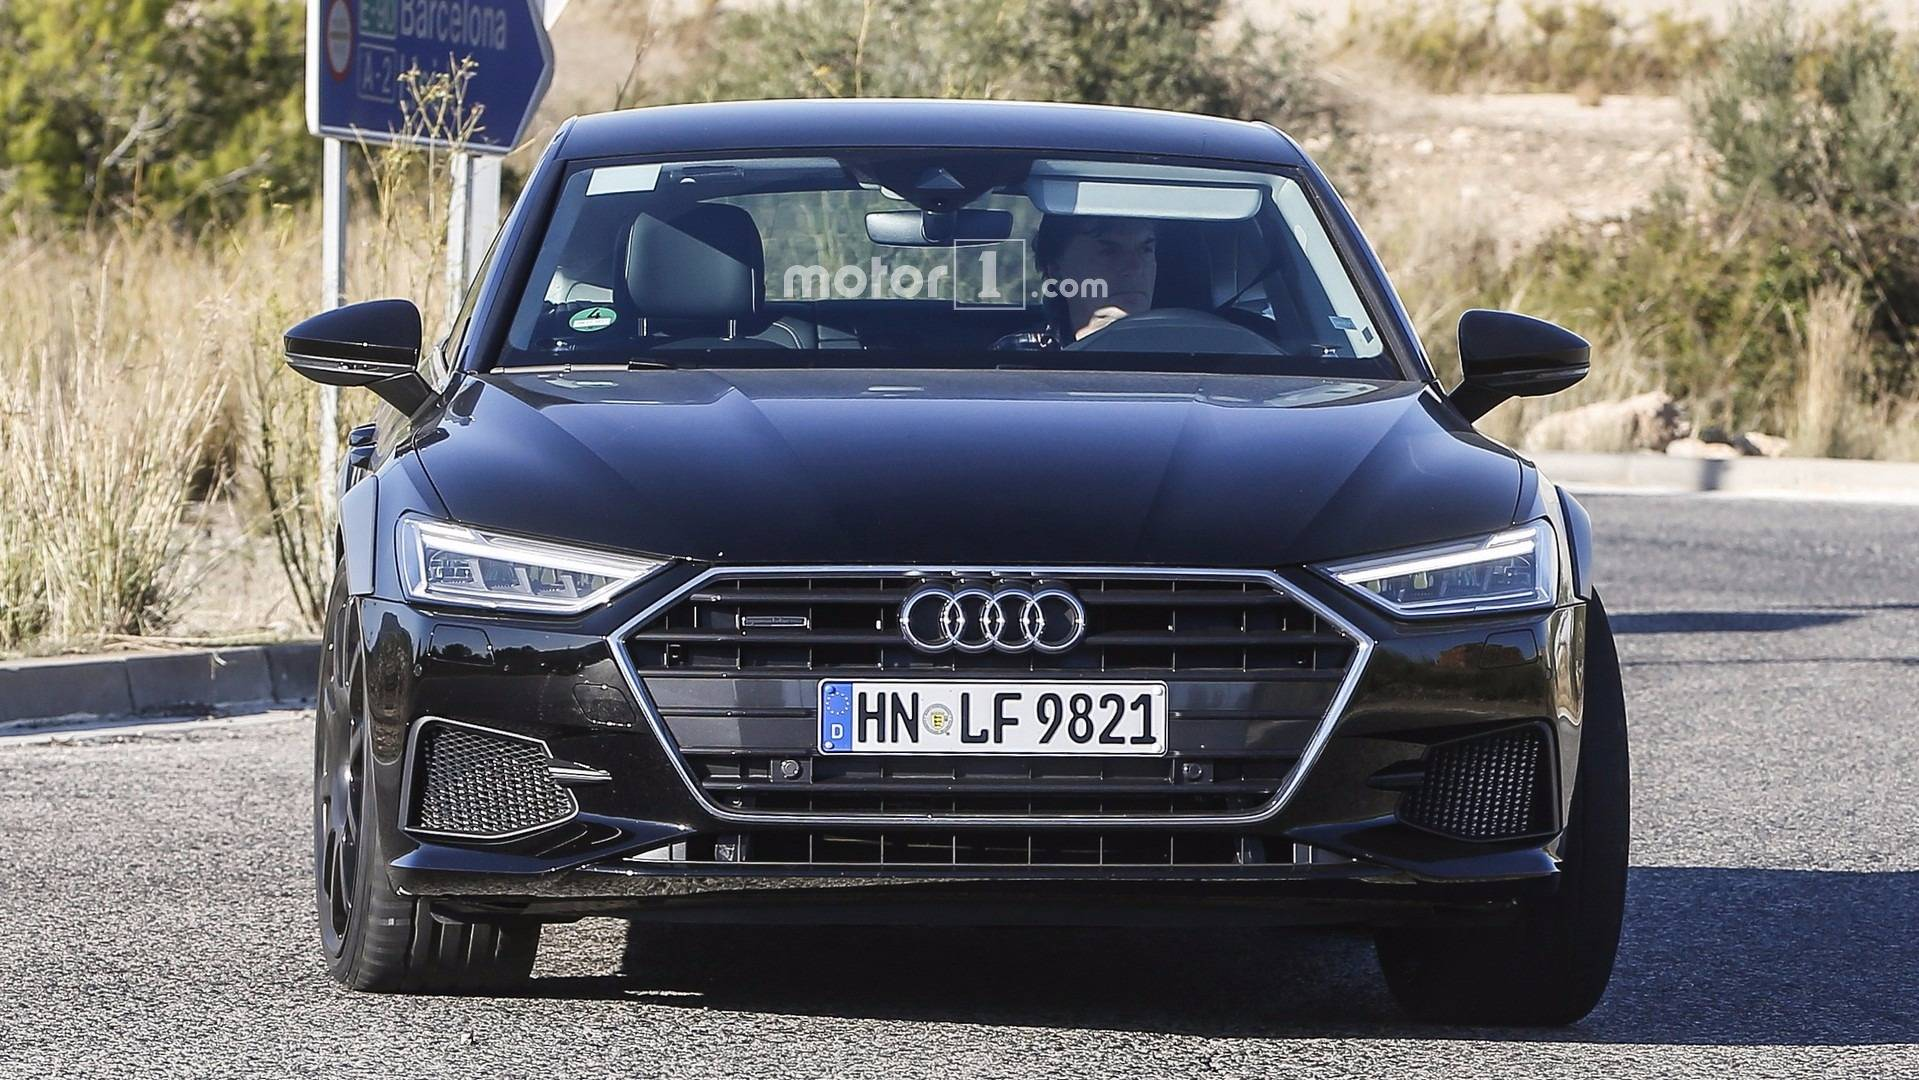 Formacar New Photos Of Audi Rs7 Sportback Leak On The Internet